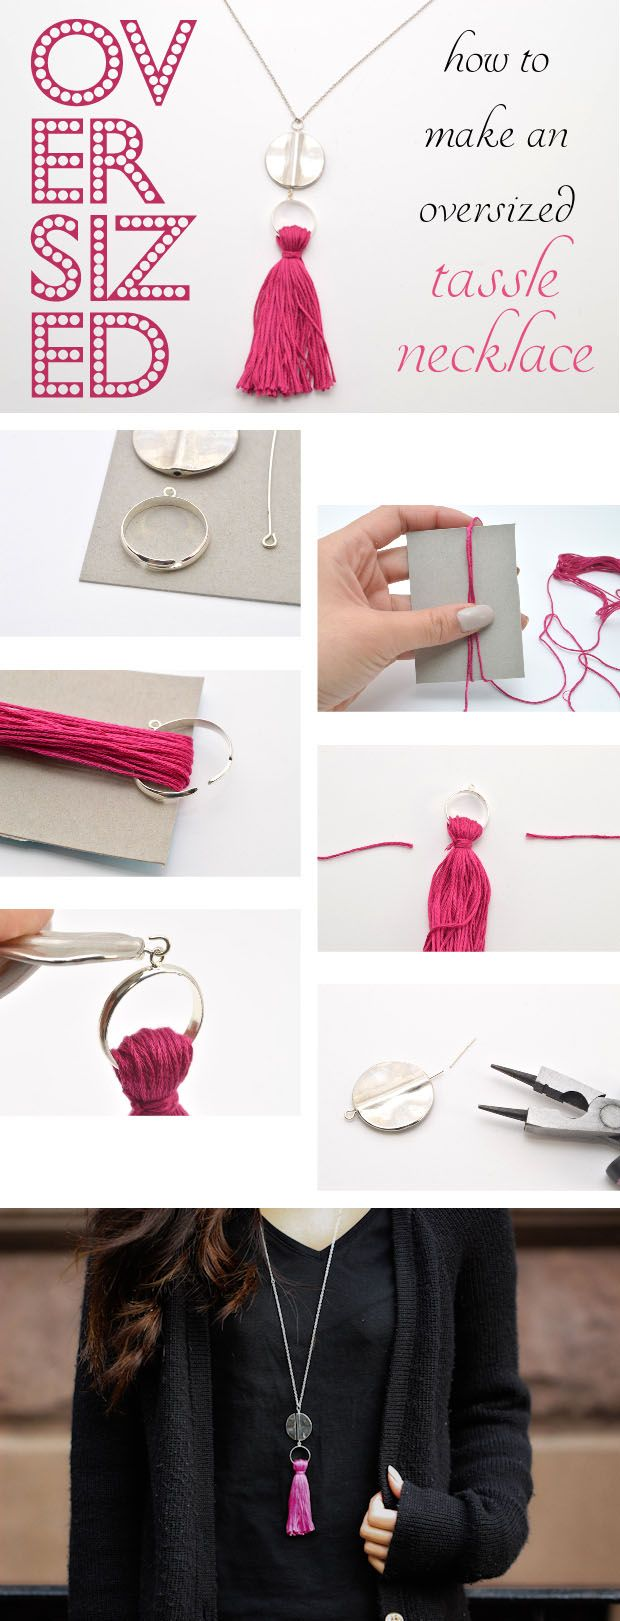 Such a great friendship gift! You can make a half a dozen of these in no time, and customize them to each friend! Great stylish gift idea! http://www.ehow.com/ehow-style/blog/make-an-oversized-tassel-necklace/?utm_source=pinterest.com&utm_medium=referral&utm_content=blog&utm_campaign=fanpage